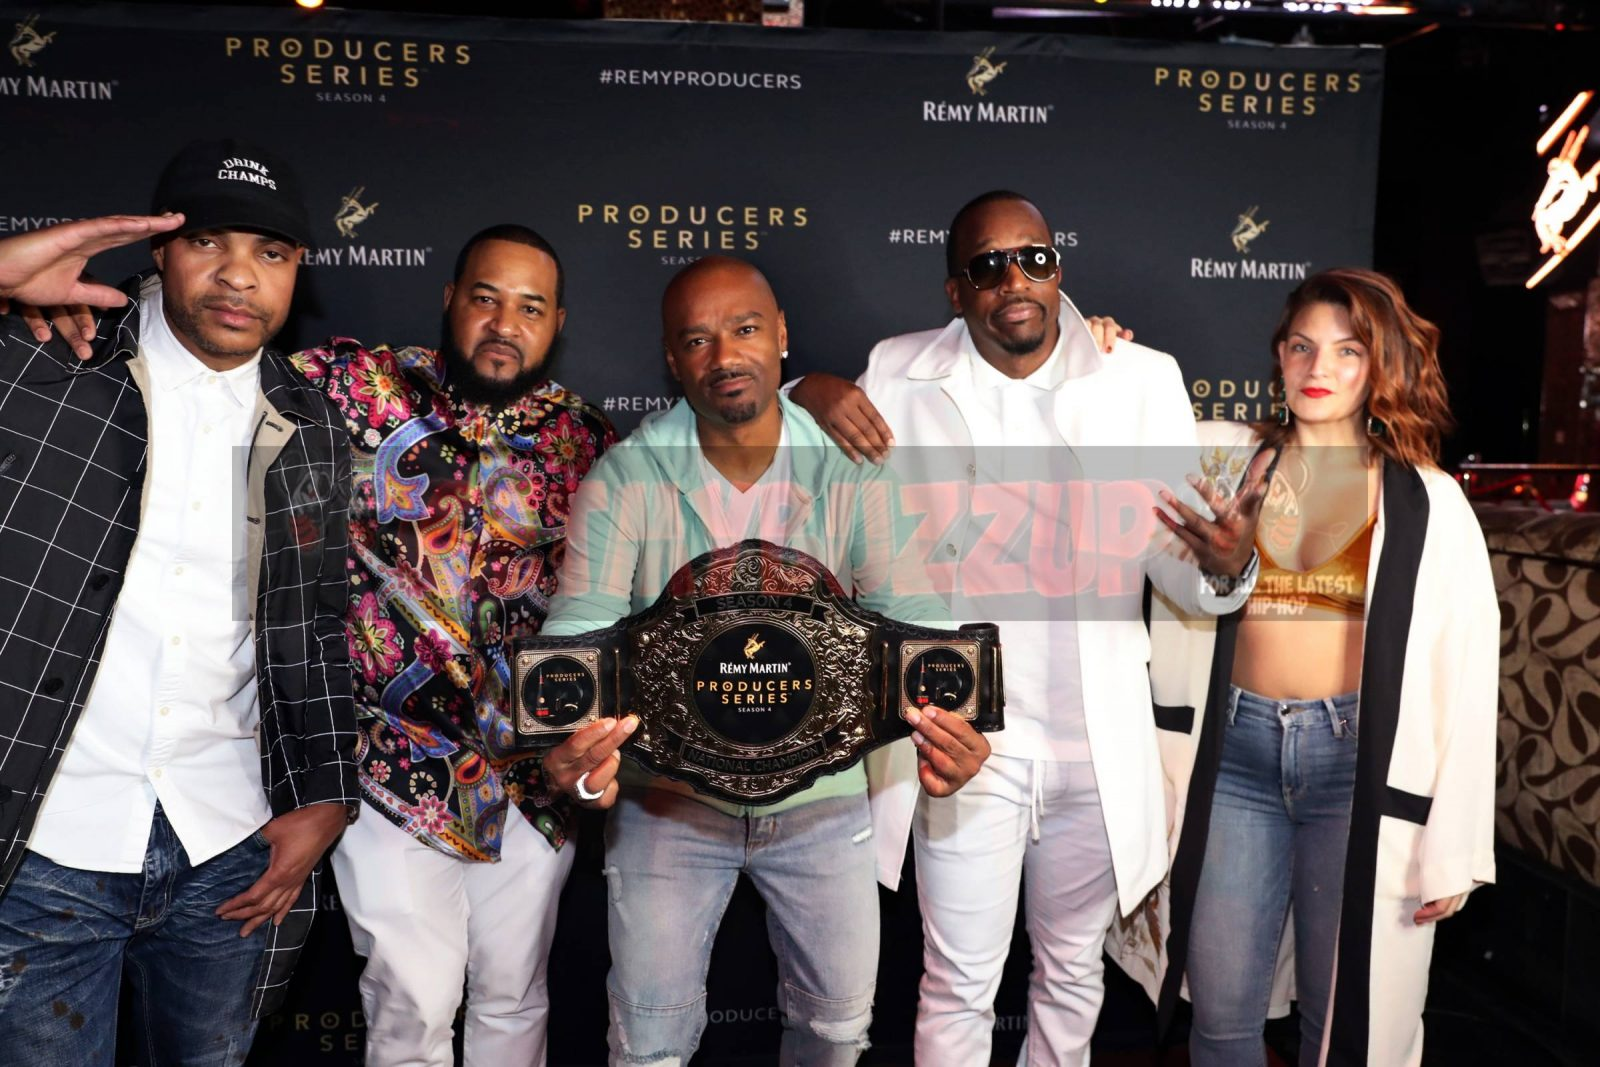 Yo Gotti, NORE, Zaytoven, Big Tigger attend The House of Rémy Martin Producers Series Season 4 Finale at Tao [Photos]